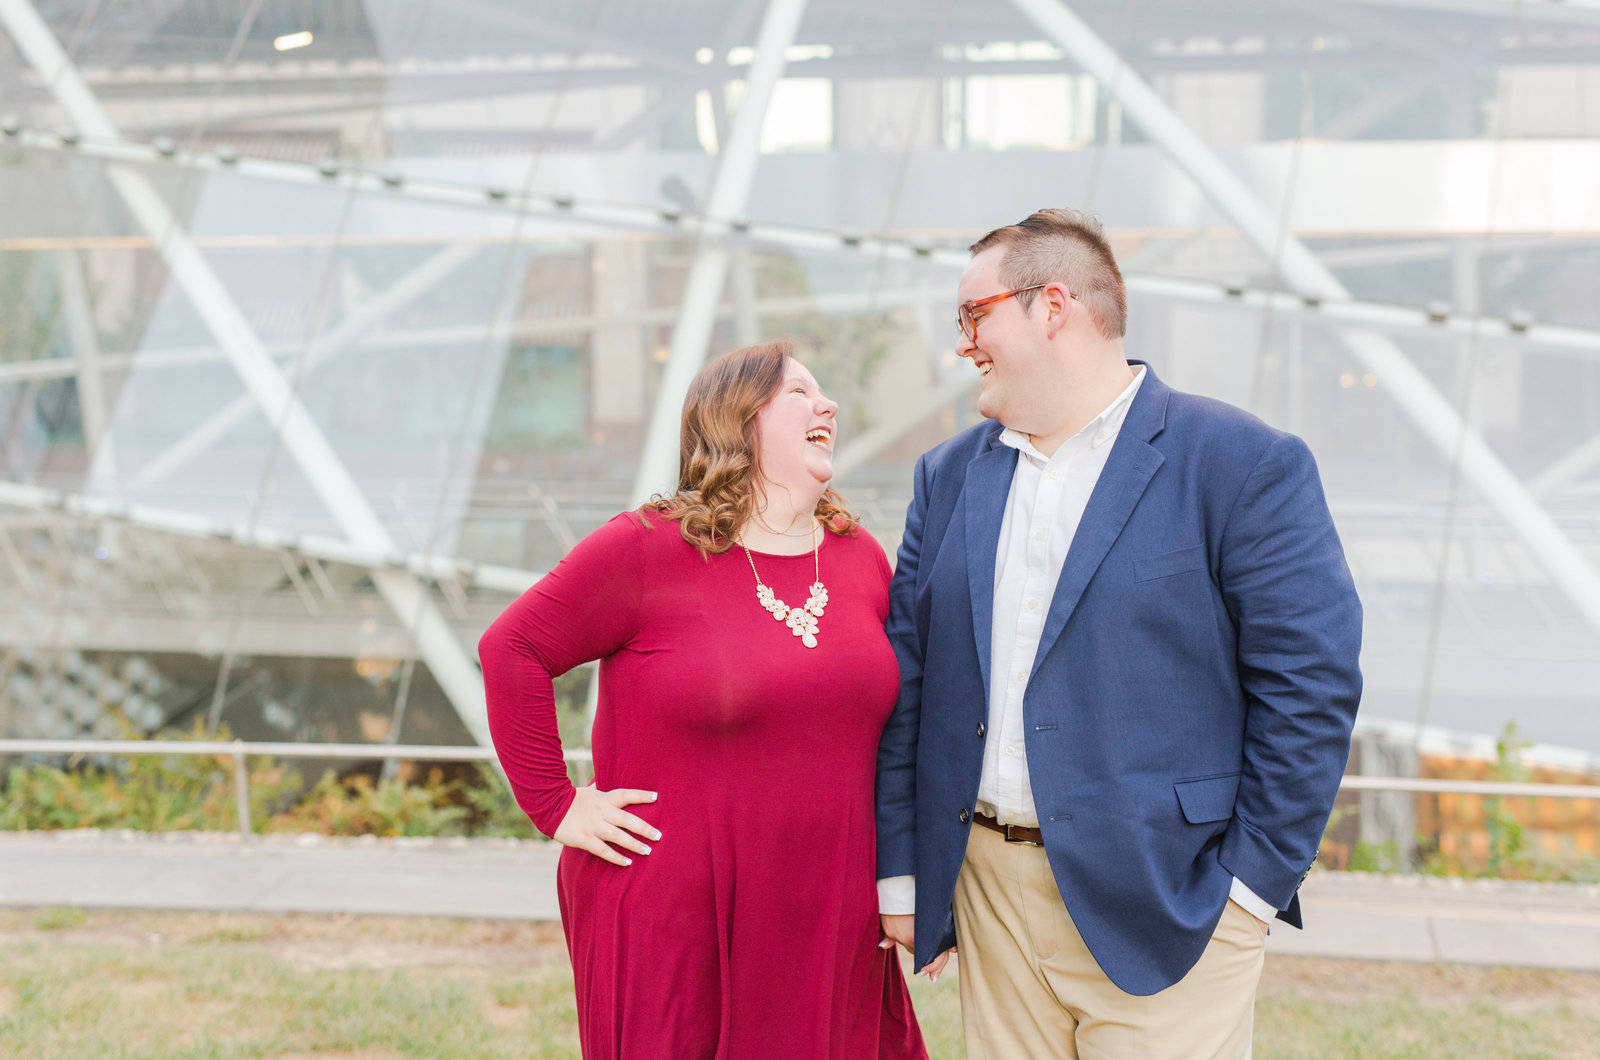 downtown-pittsburgh-engagement-session-allison-ewing-photography-011-1